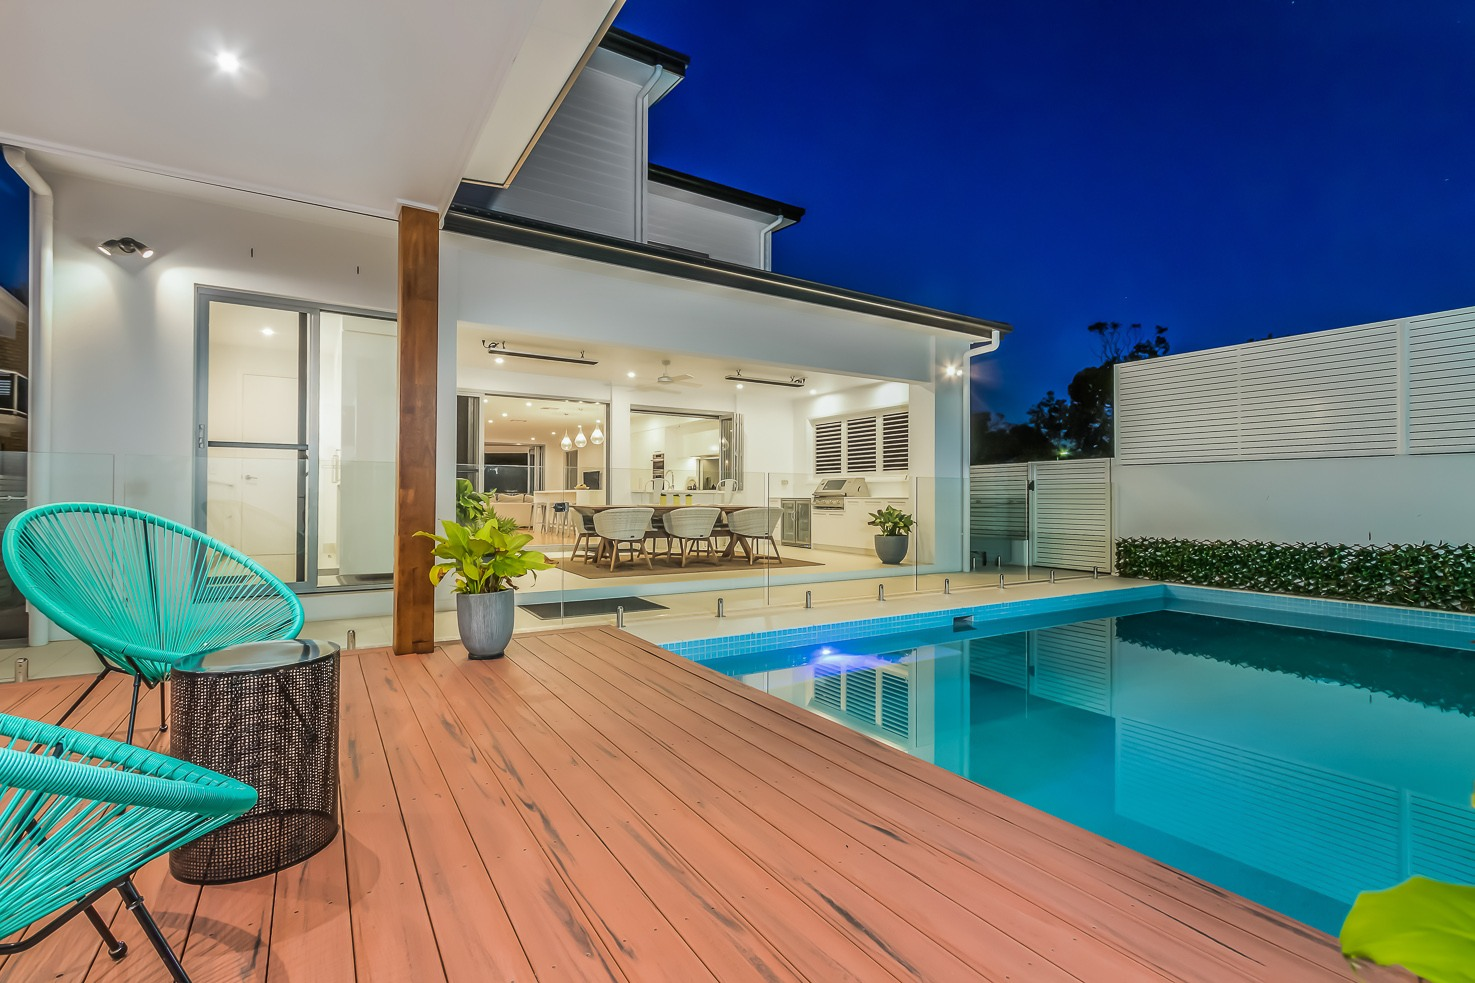 Brisbane Manly contemporary home back view of the pool area at dusk